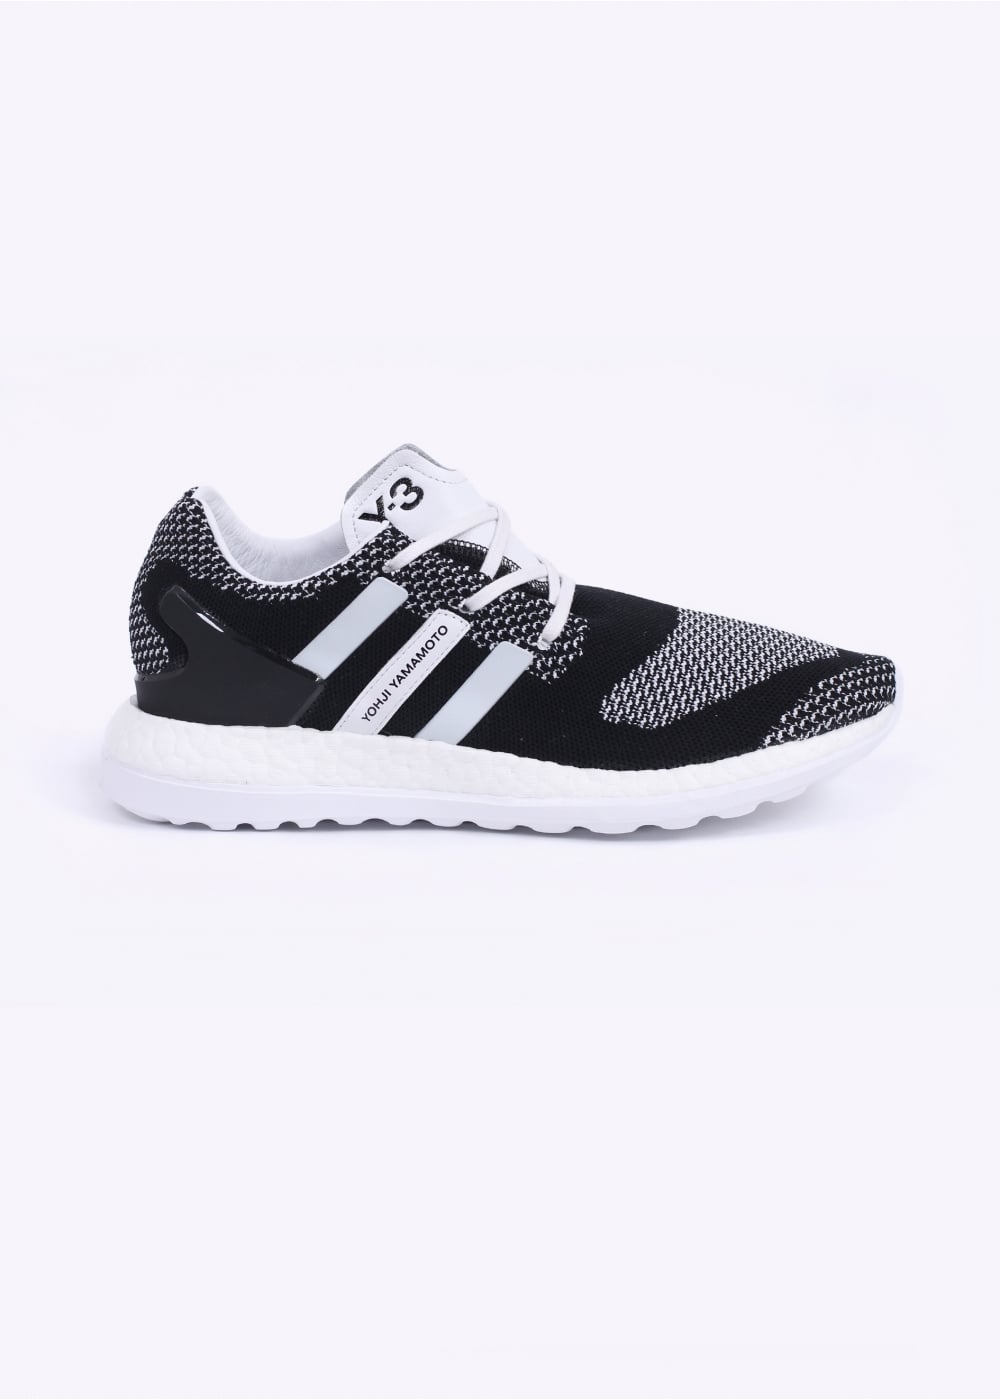 eb3893510f5e9 adidas Y-3 Pure Boost ZG Knit Trainers - Black   White